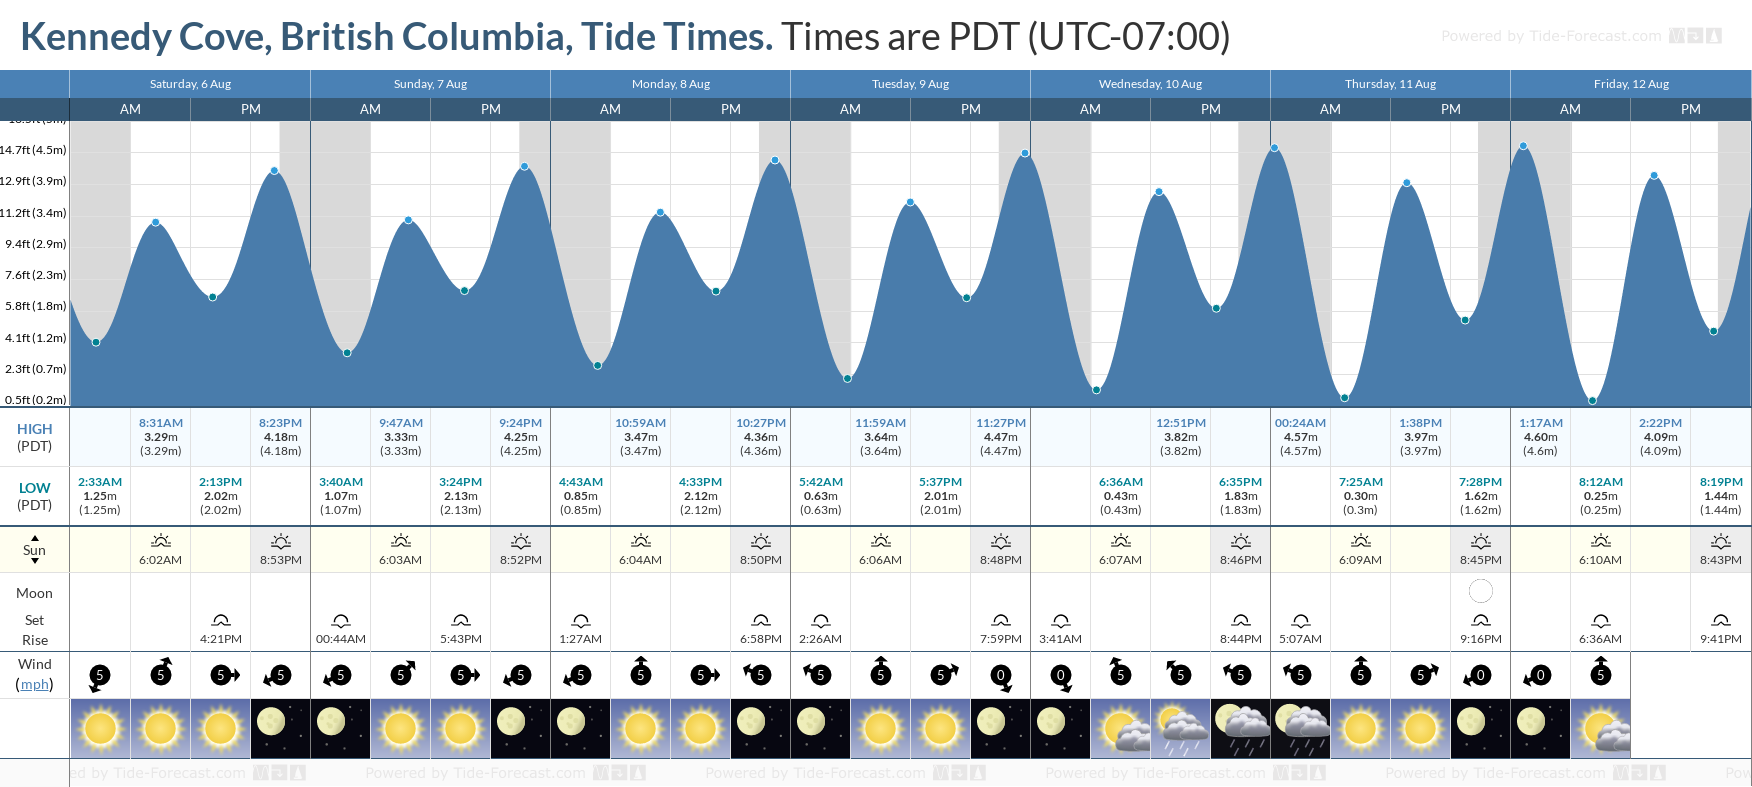 Kennedy Cove, British Columbia Tide Chart including high and low tide tide times for the next 7 days